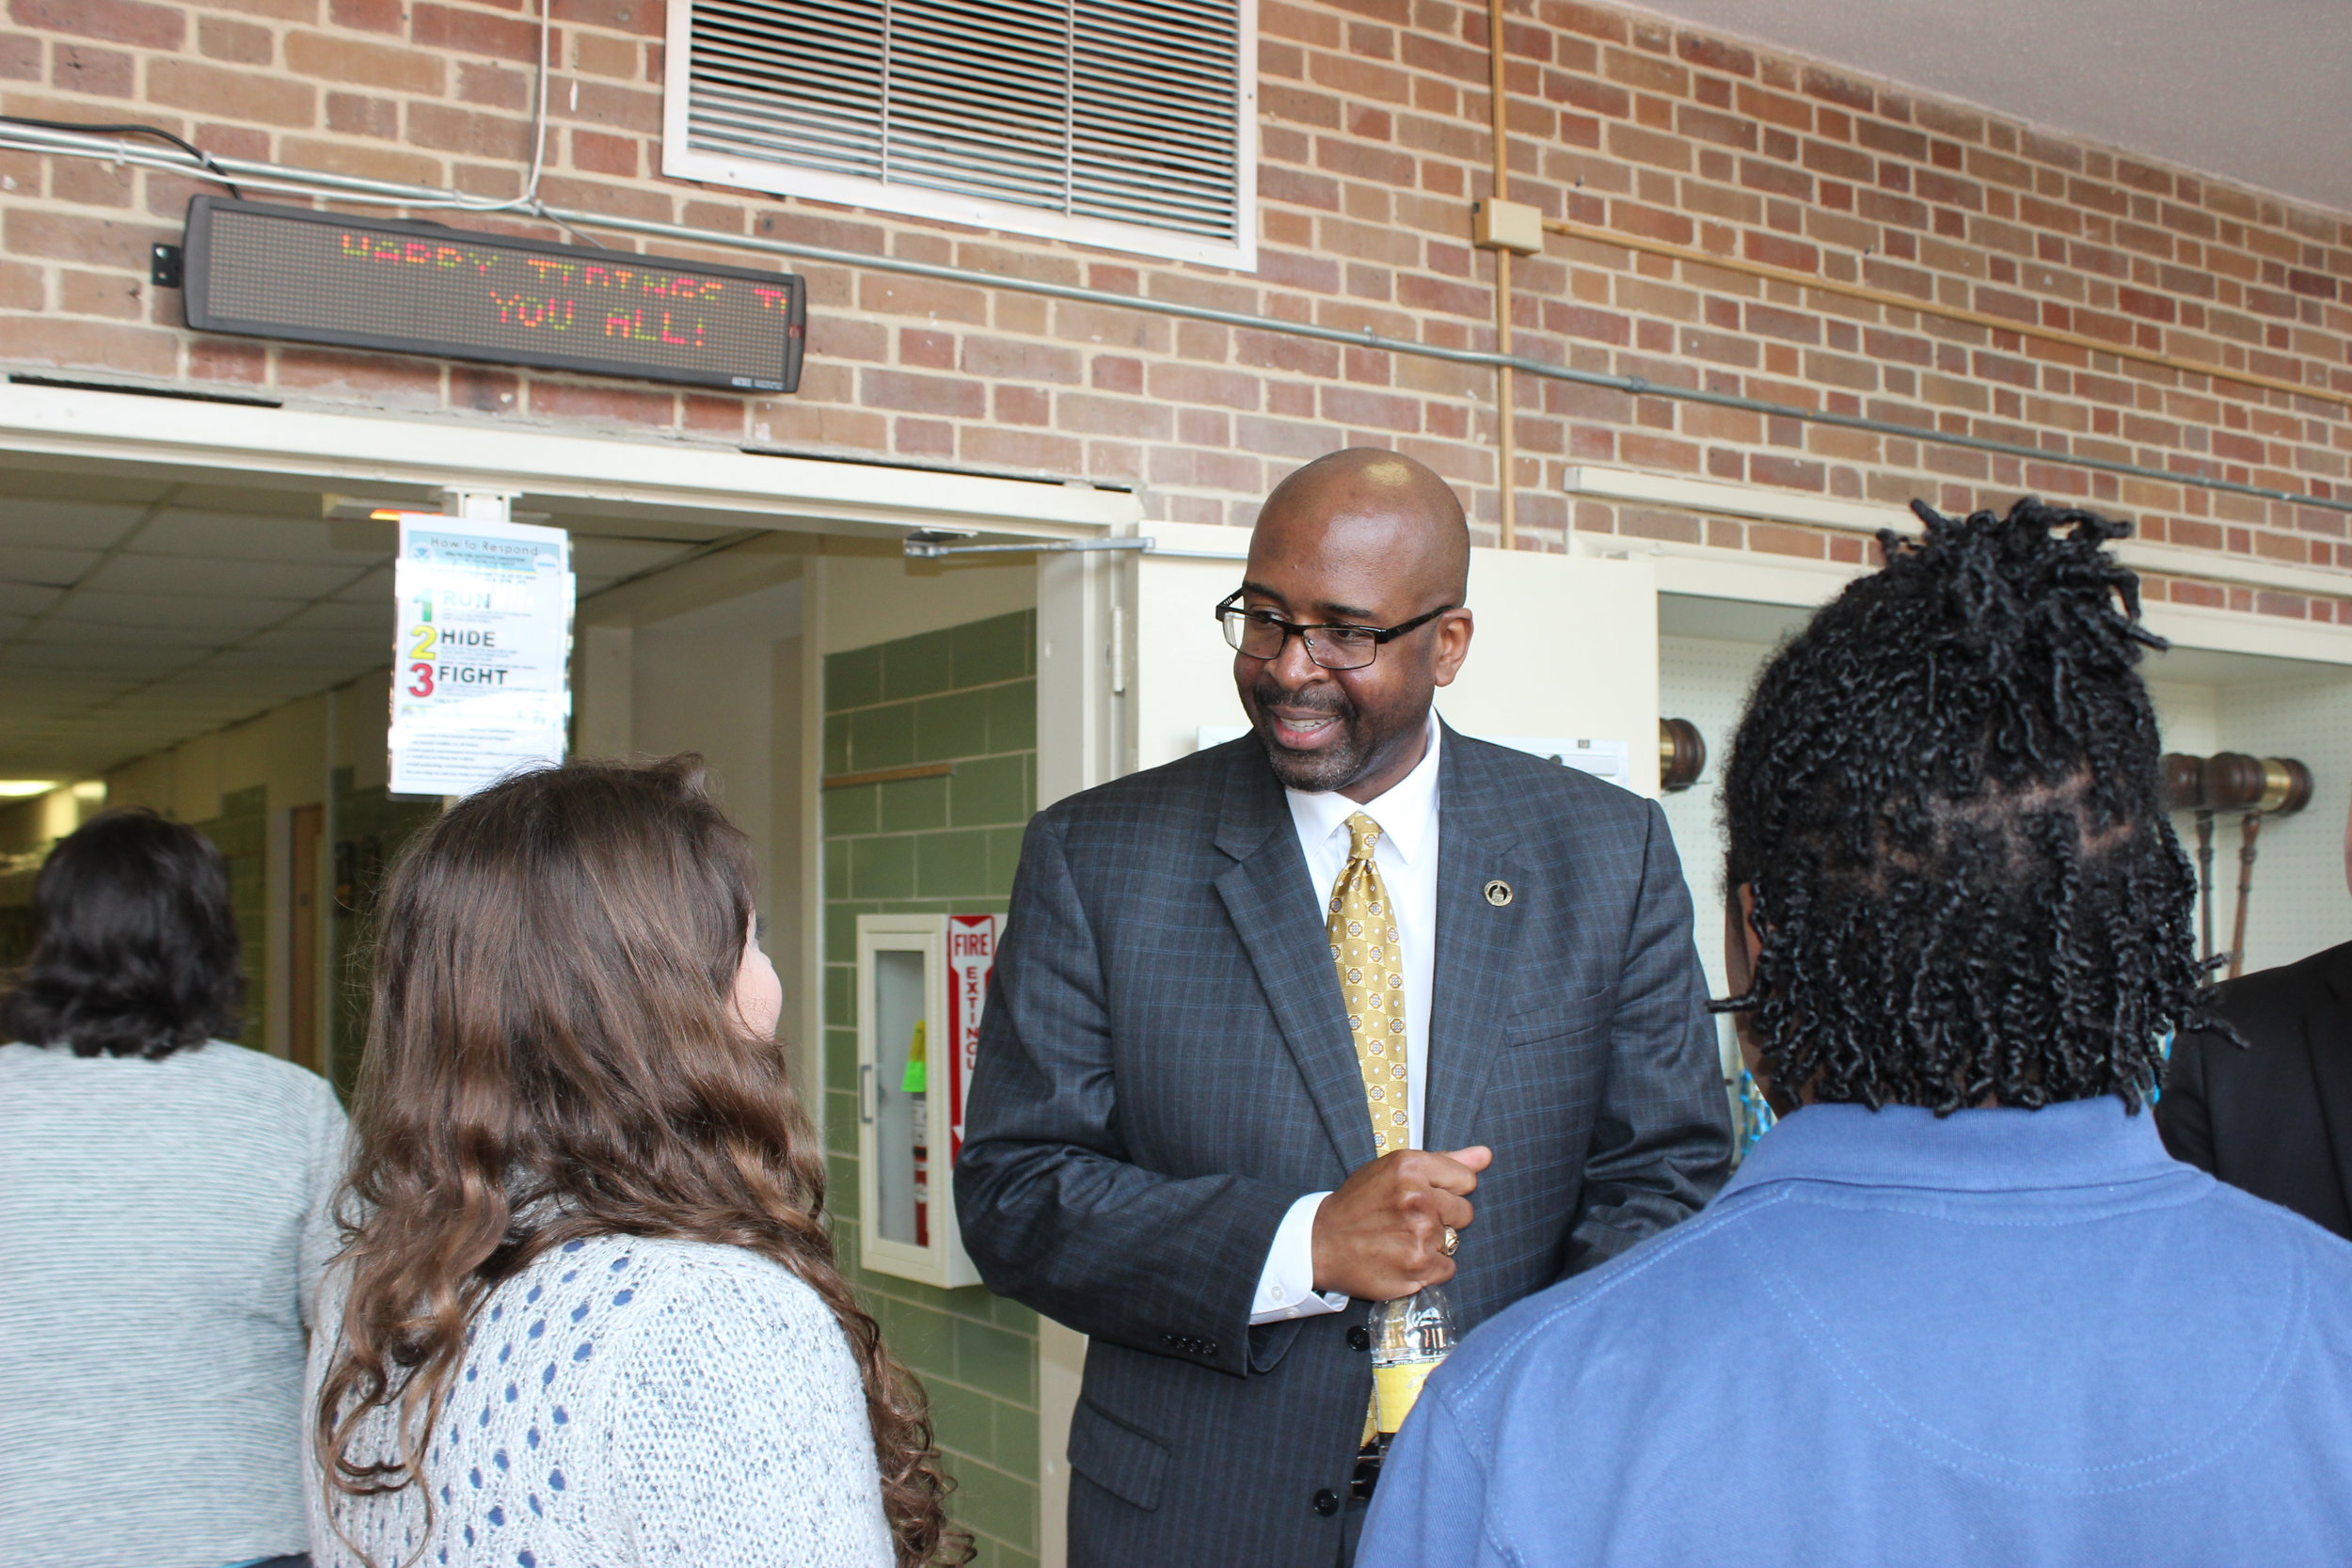 University of Southern Mississippi president Dr. Rodney Bennett meets with MSMS students during a recent tour of the school.